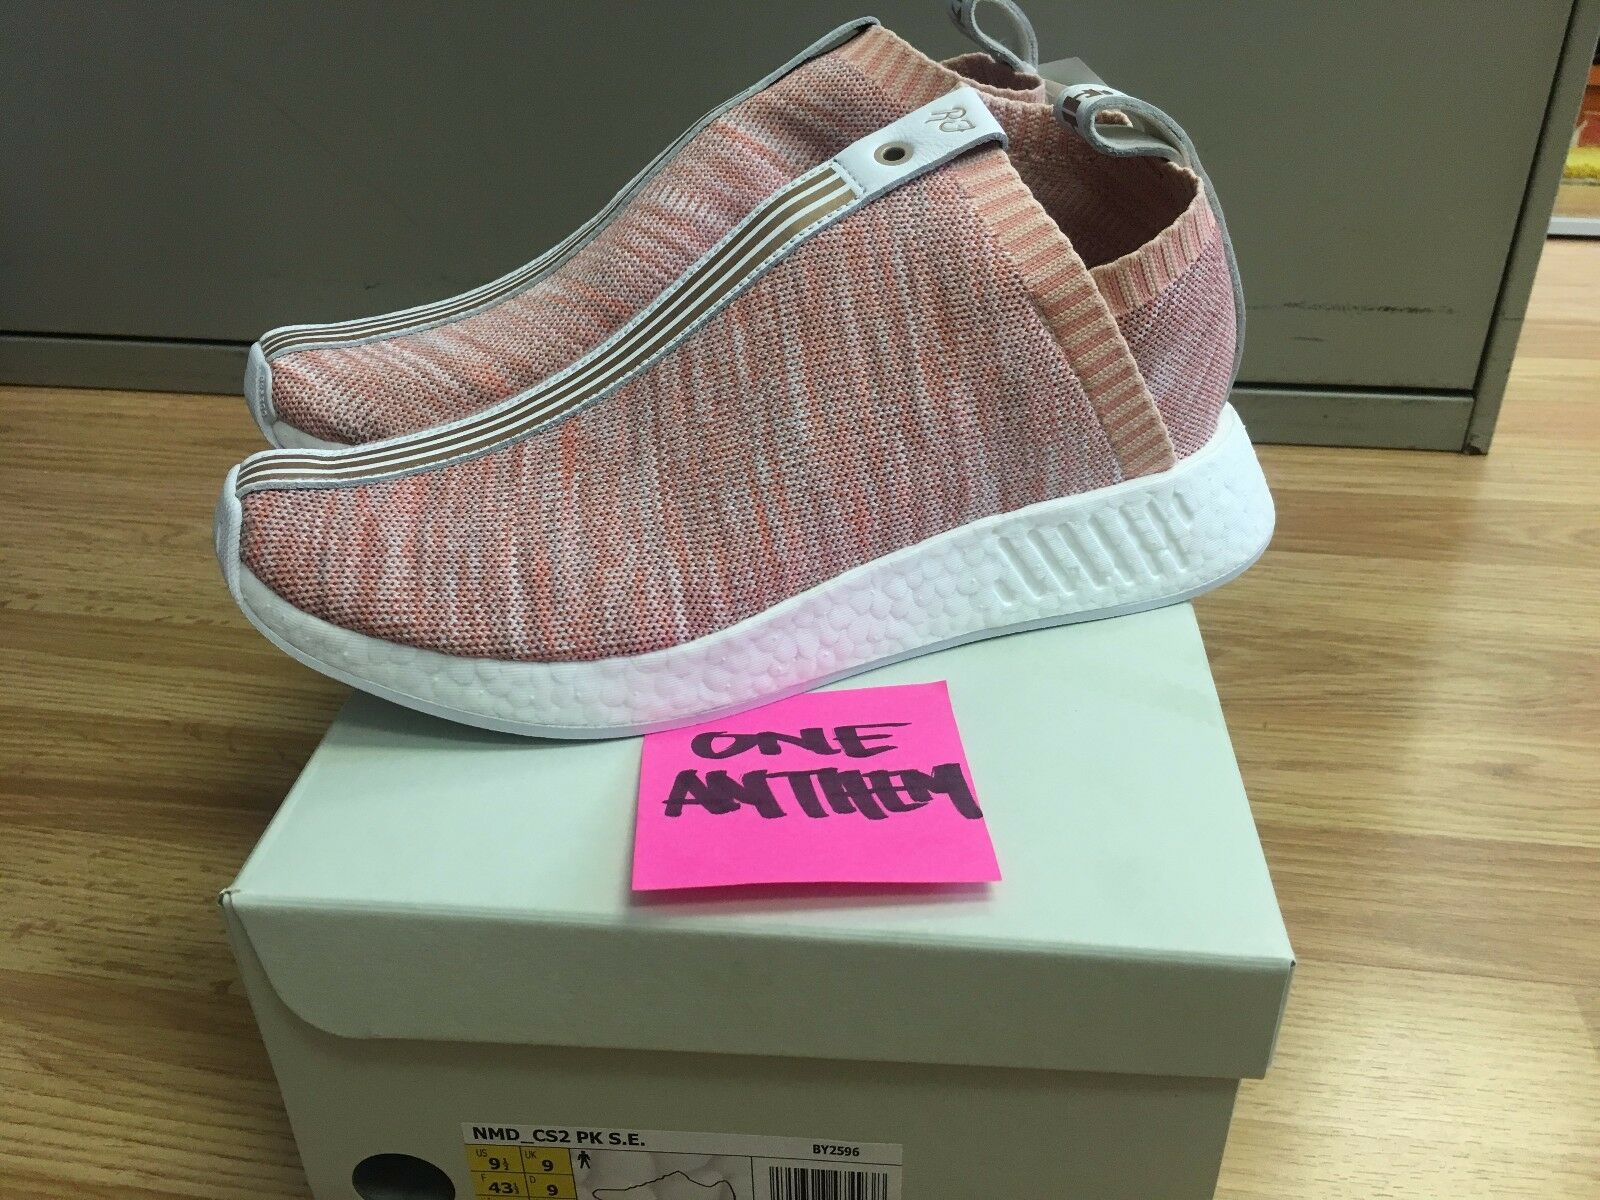 Naked X amicaux x Adidas Consortium NMD CS2 BY2596 Rose Sz 9.5